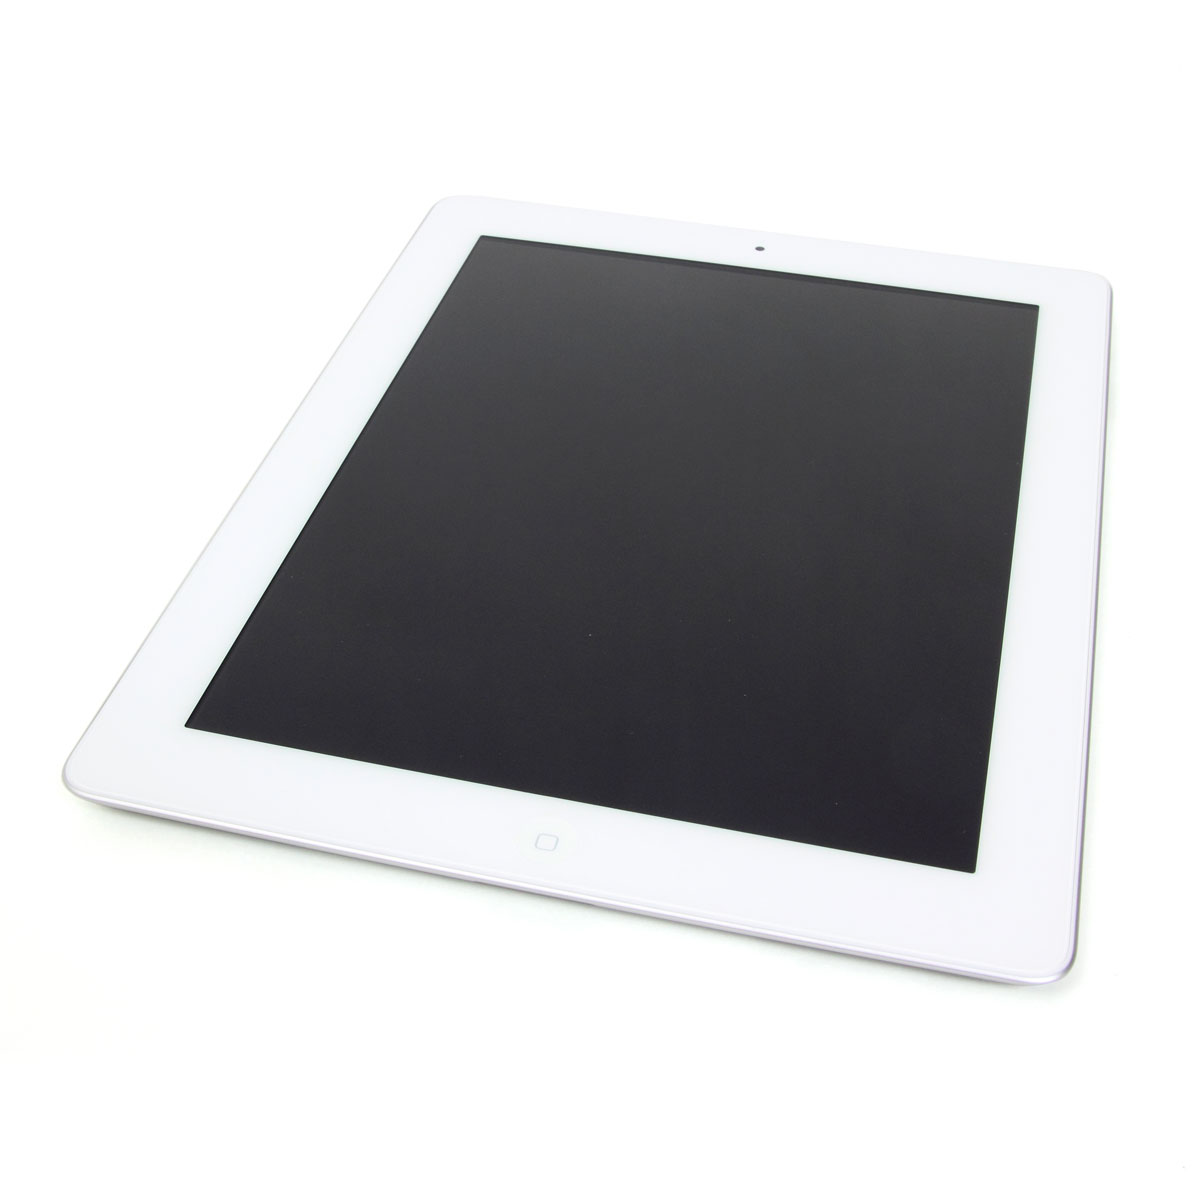 apple ipad 2 wi fi 16 go blanc tablette tactile apple sur ldlc. Black Bedroom Furniture Sets. Home Design Ideas